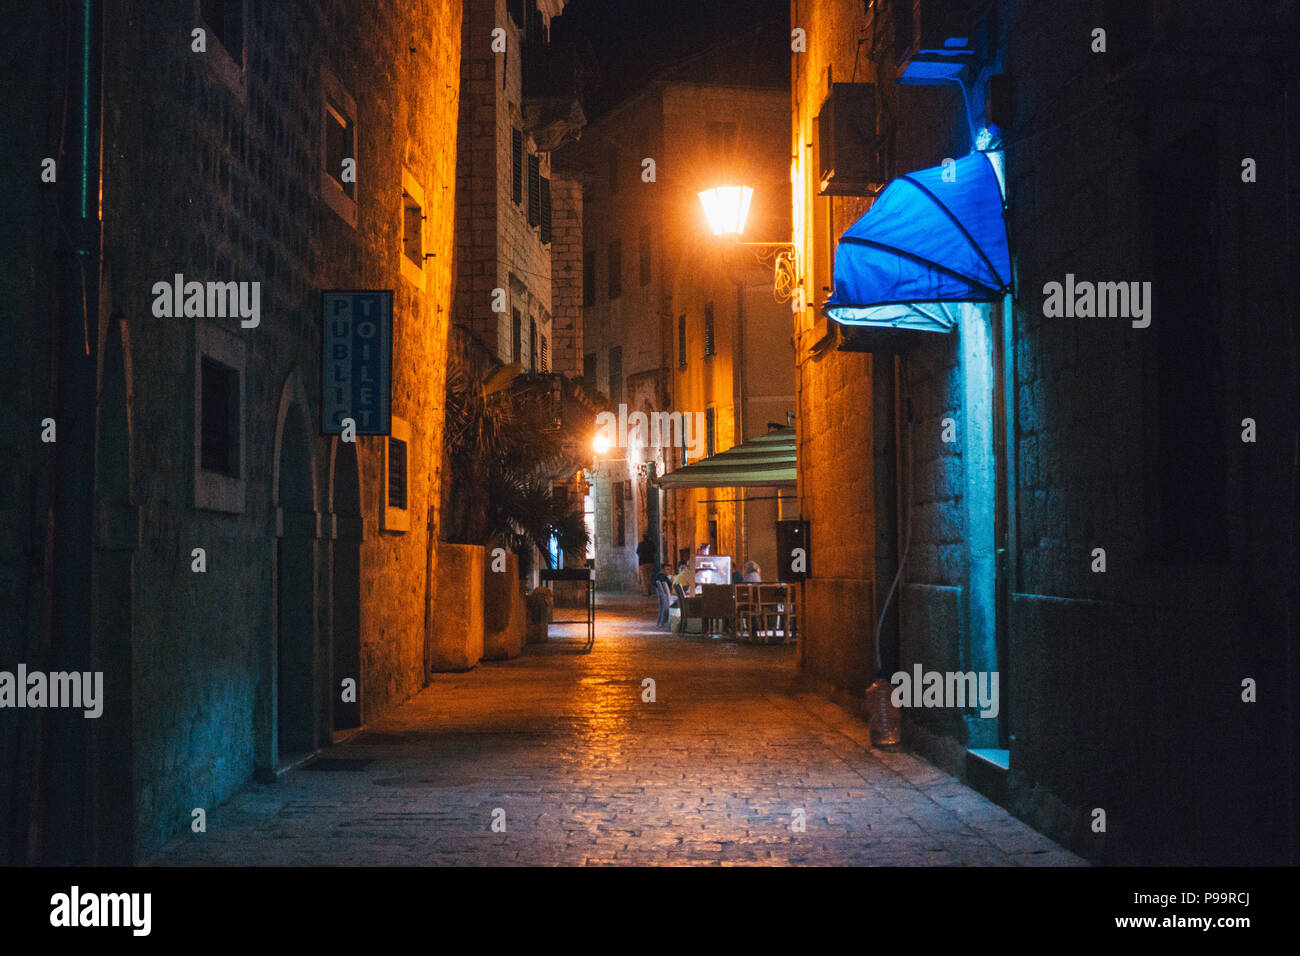 a deserted narrow cobblestone street at night in Kotor Old Town, Montenegro - Stock Image